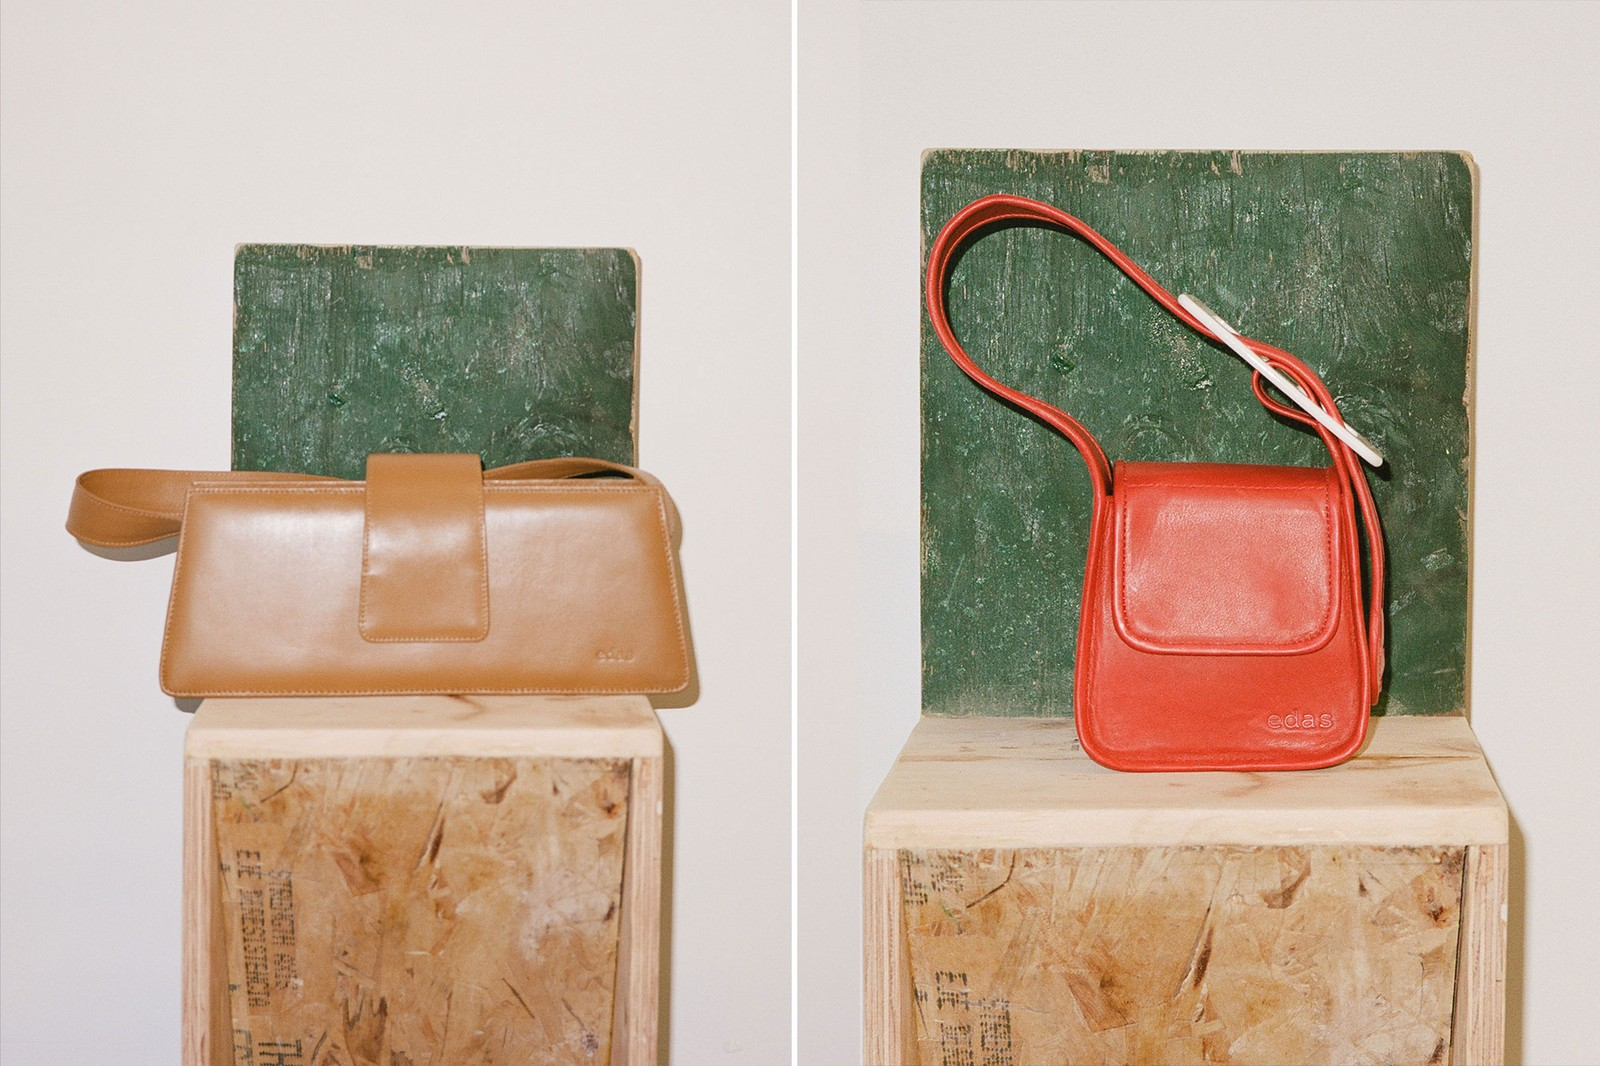 behind the atelier sade mims edas sustainable accessories brand handbags jewelry interview